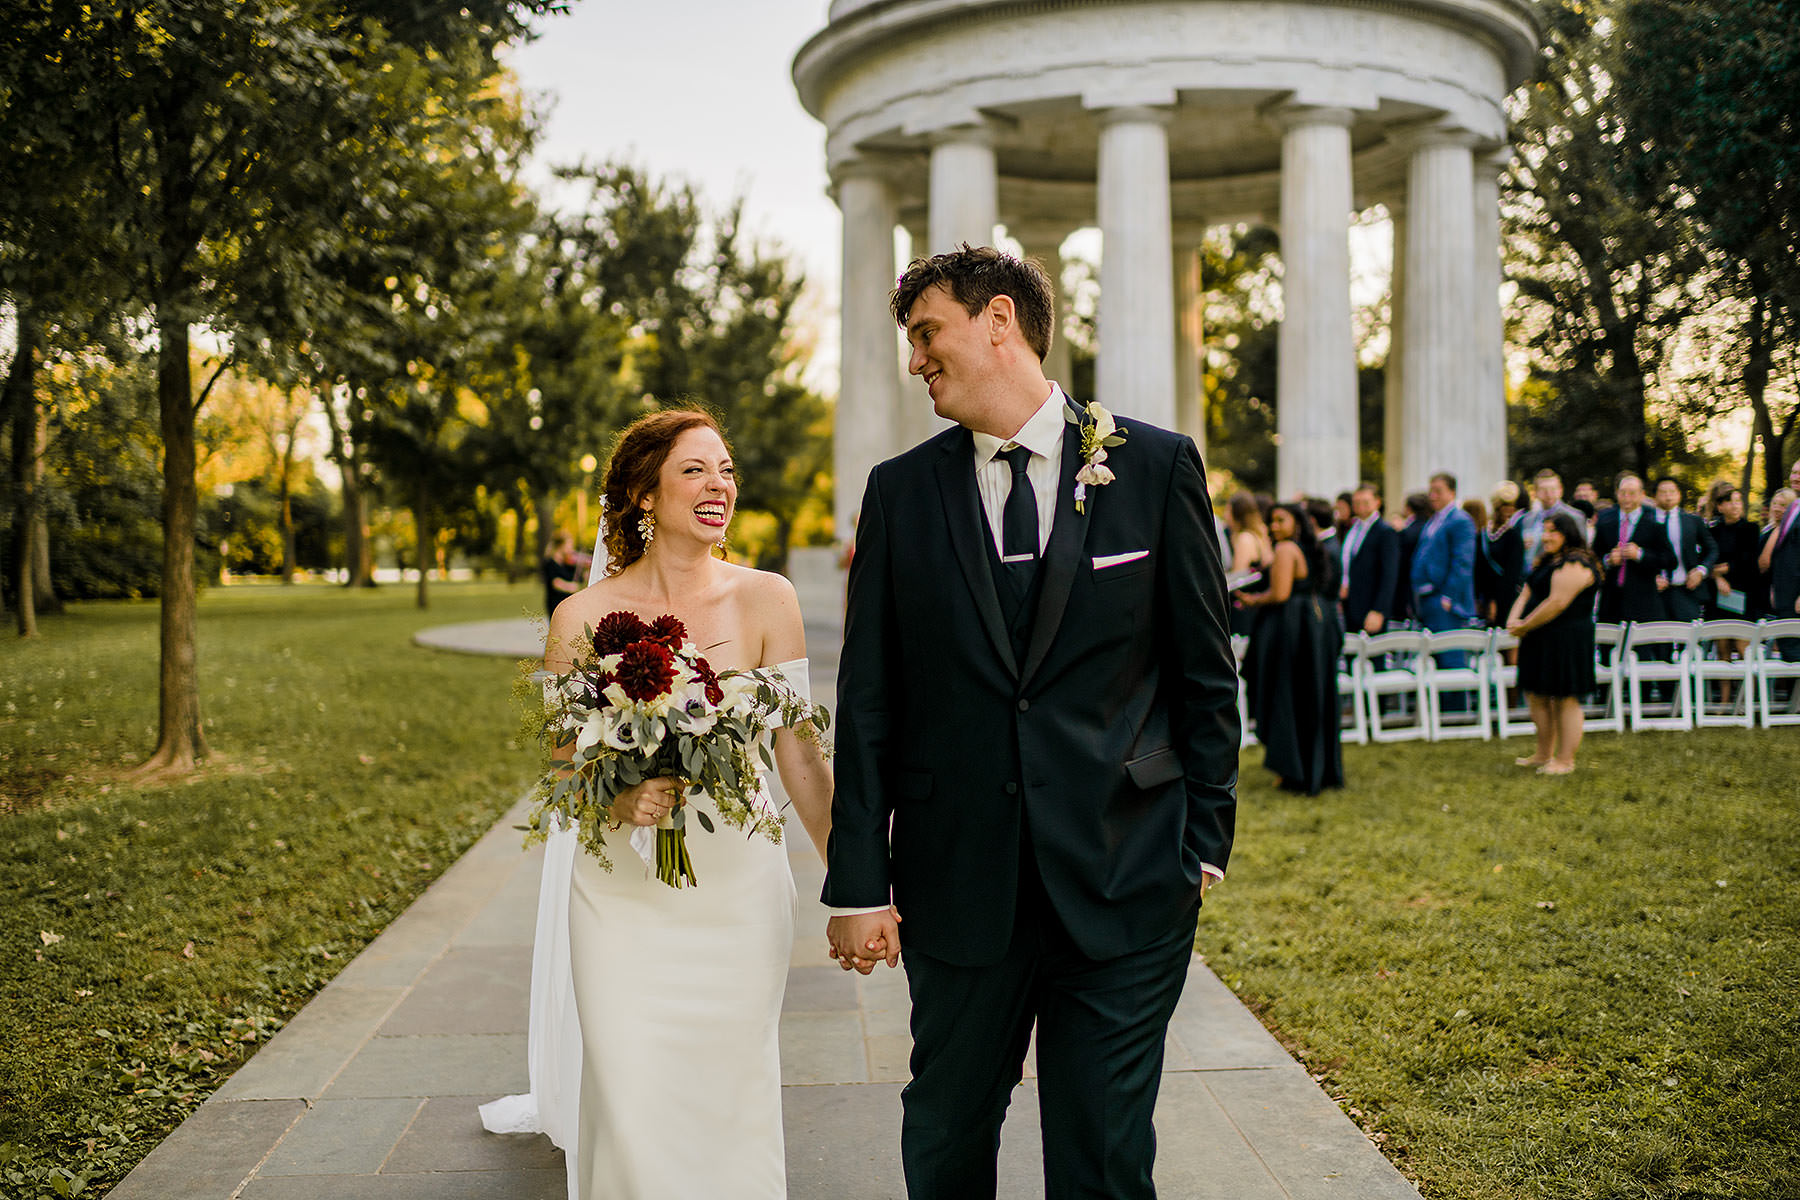 happy and tearful reaction of bride and groom walking down the aisle by Washington DC Wedding Photographer Adam Mason